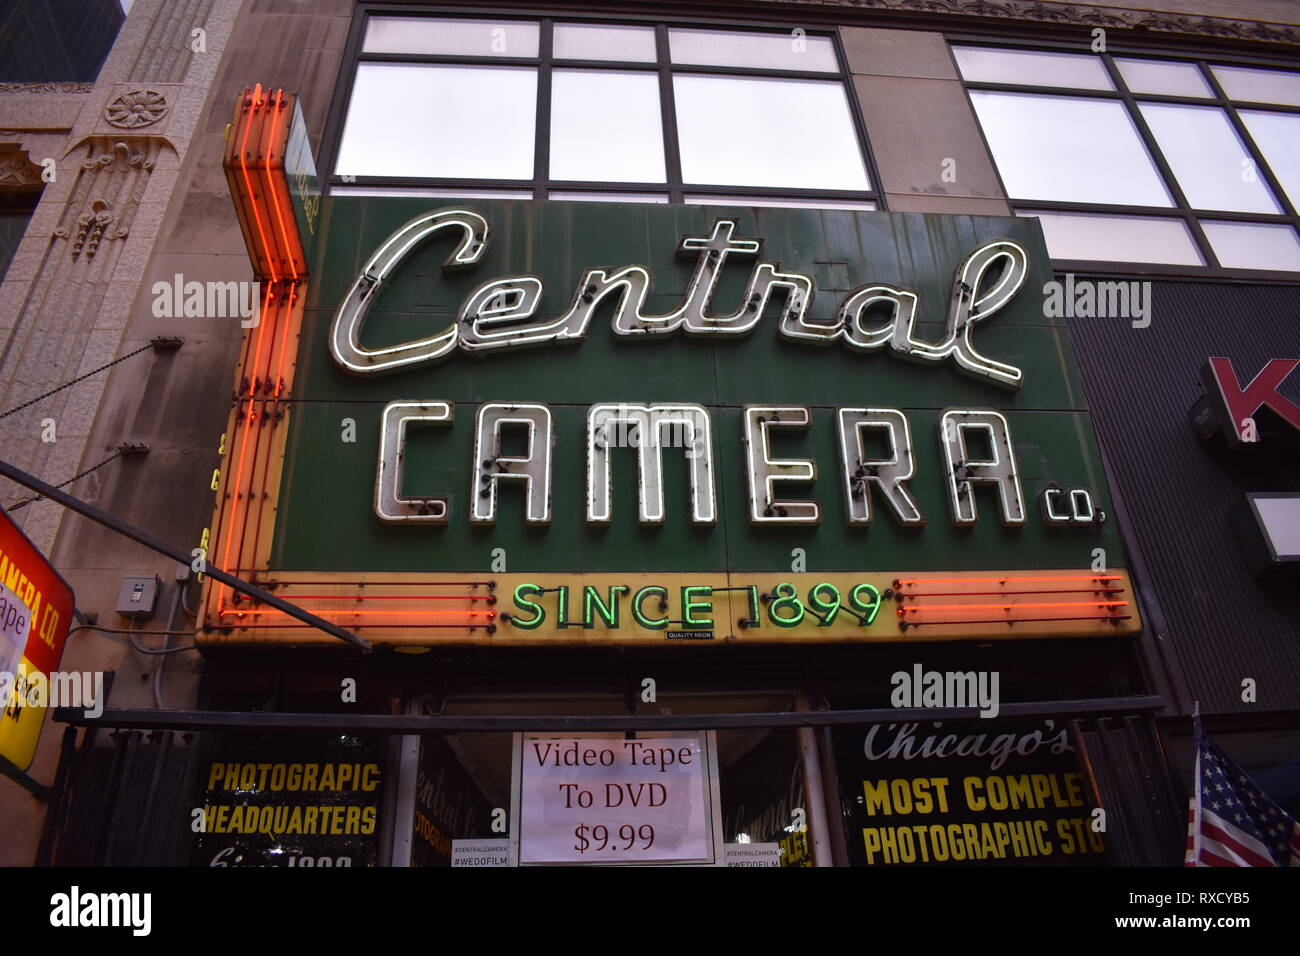 Central Camera store in Chicago Illinois - Stock Image